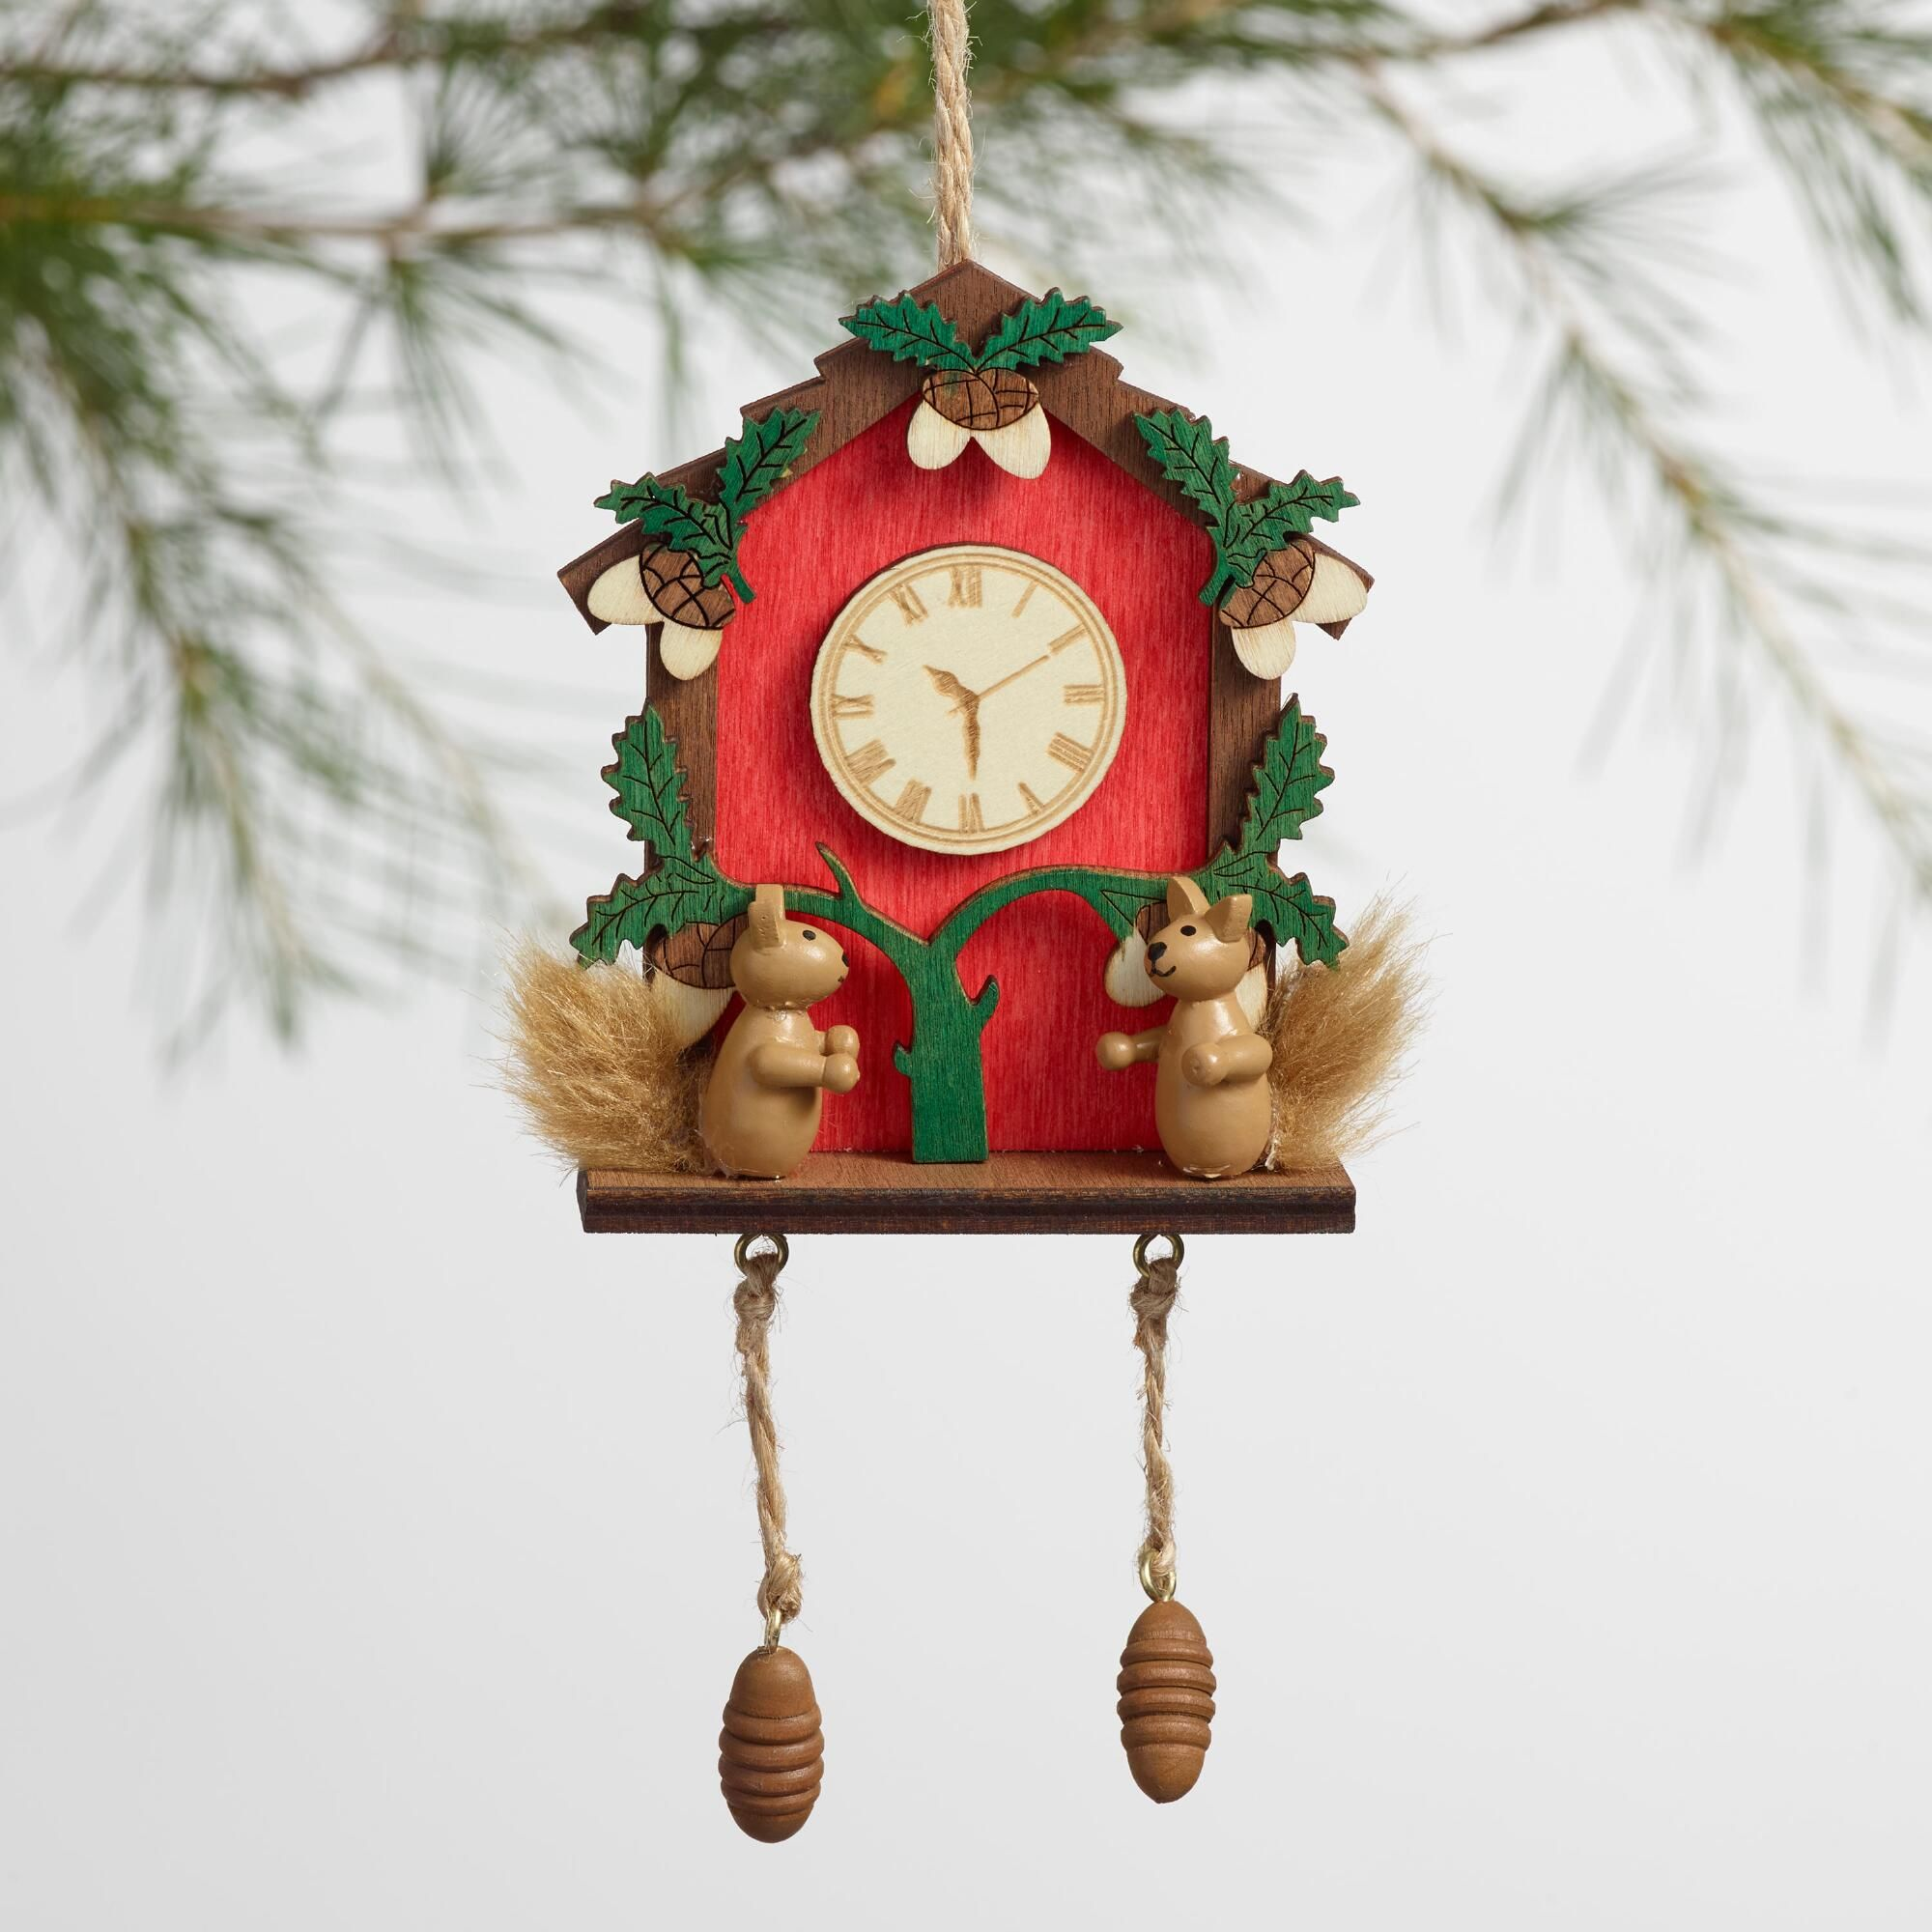 Plaid monograms natural wood ornaments feathers and i couldn t - Ornament